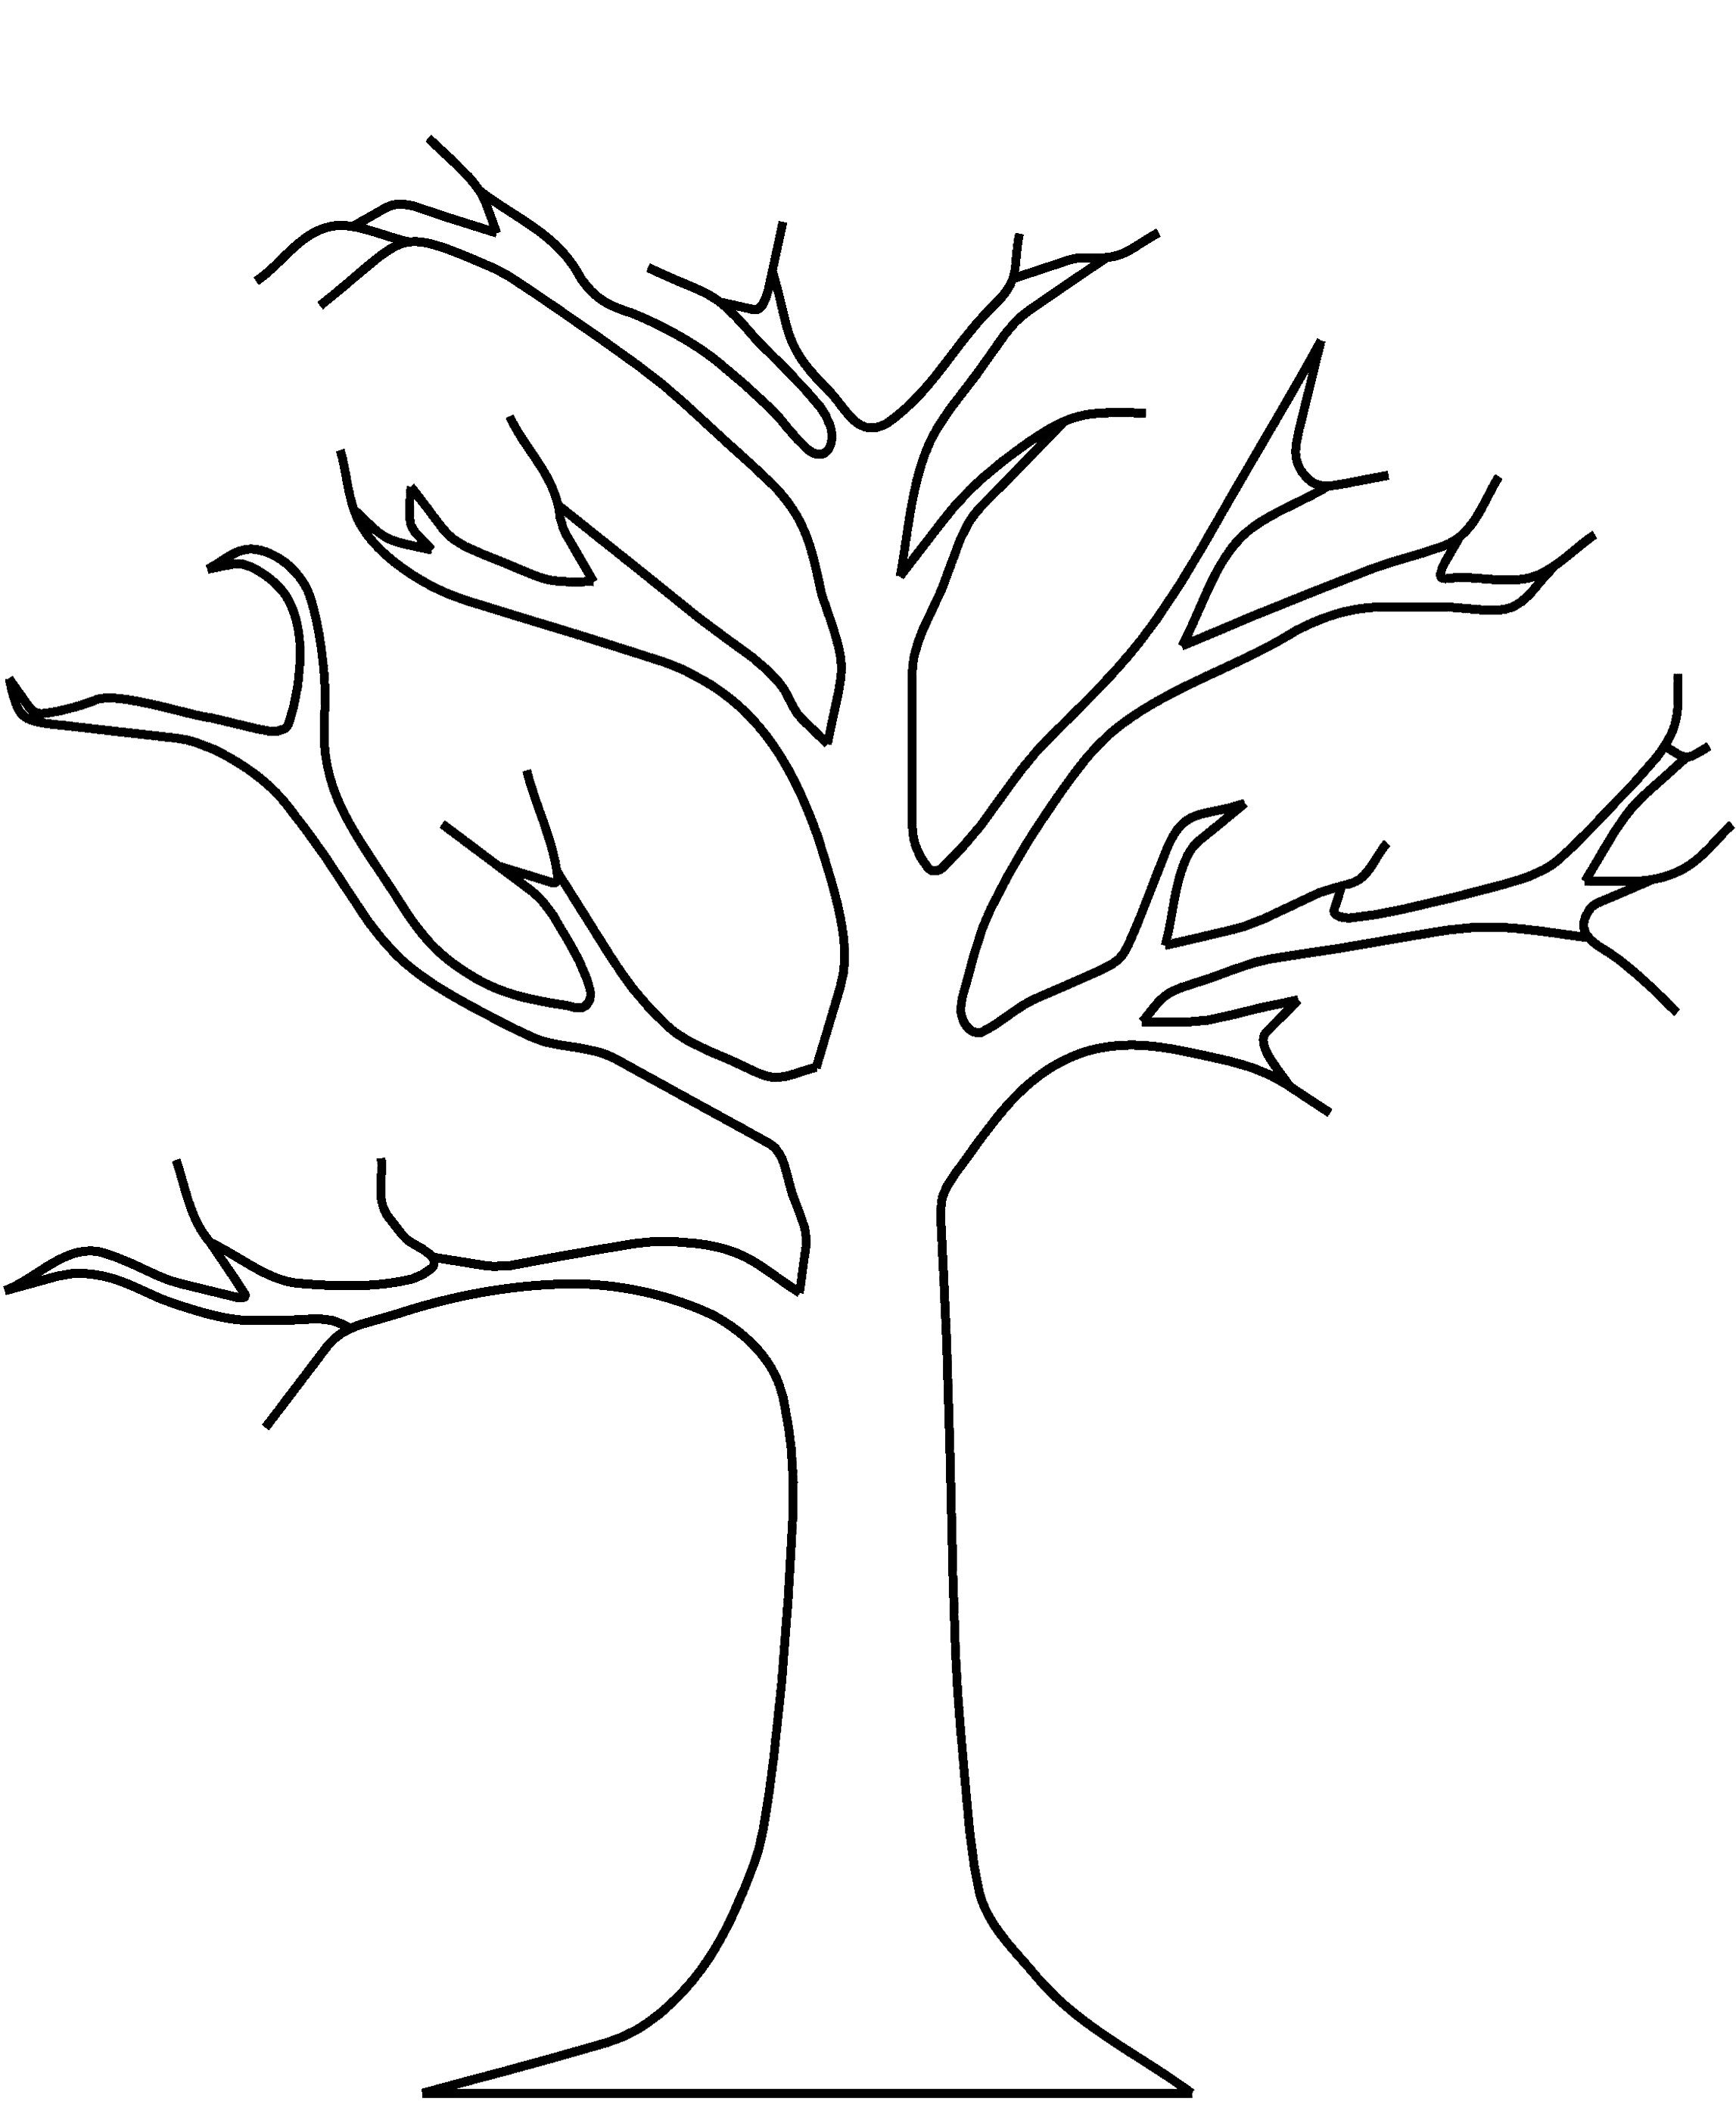 palm tree coloring page to use for deborah lesson judges mormon